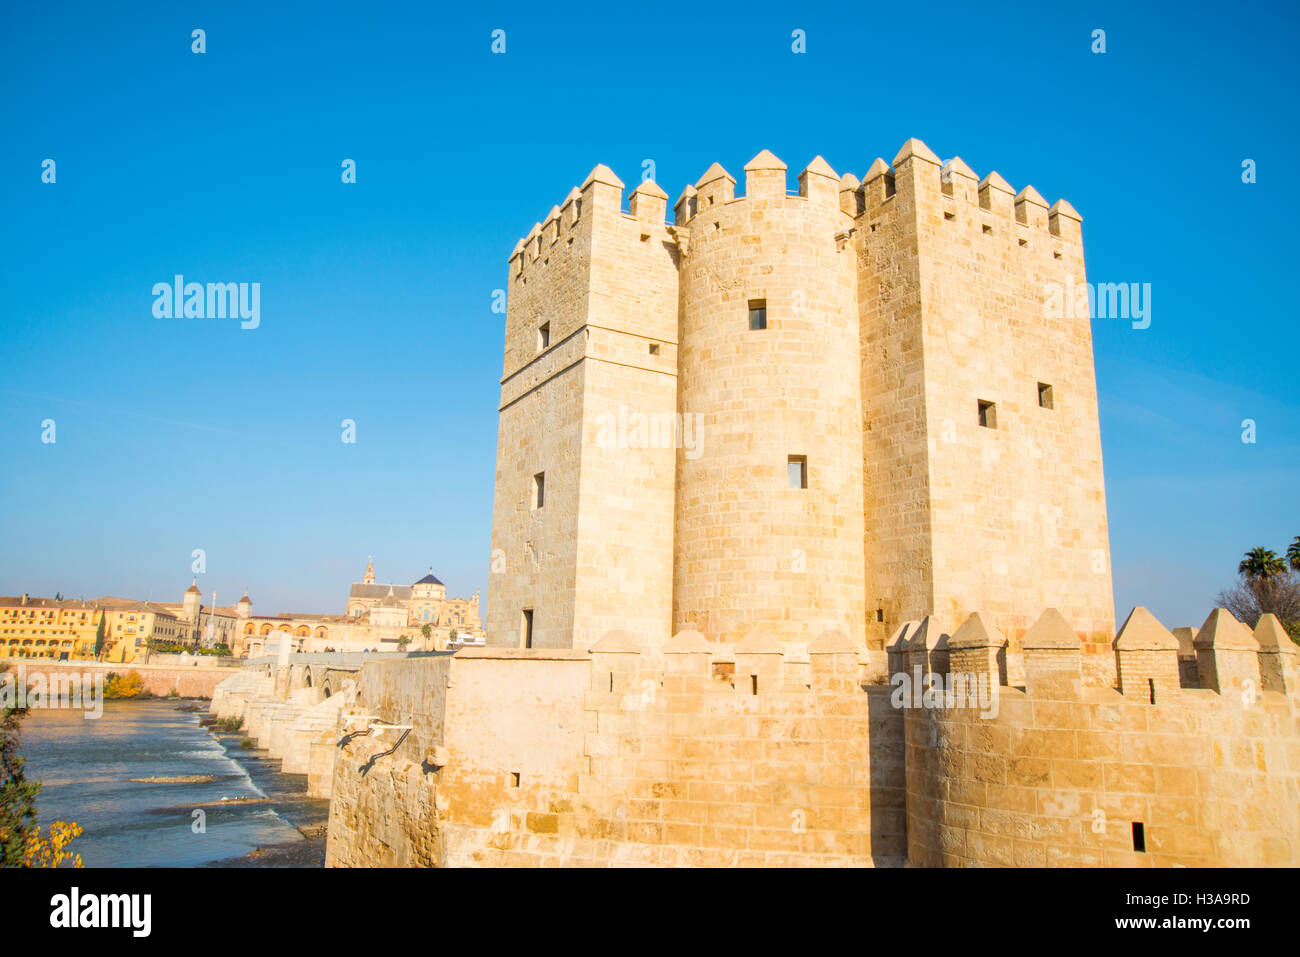 Lacalahorra tower, Roman bridge and Mosque-cathedral. Cordoba, Spain. - Stock Image